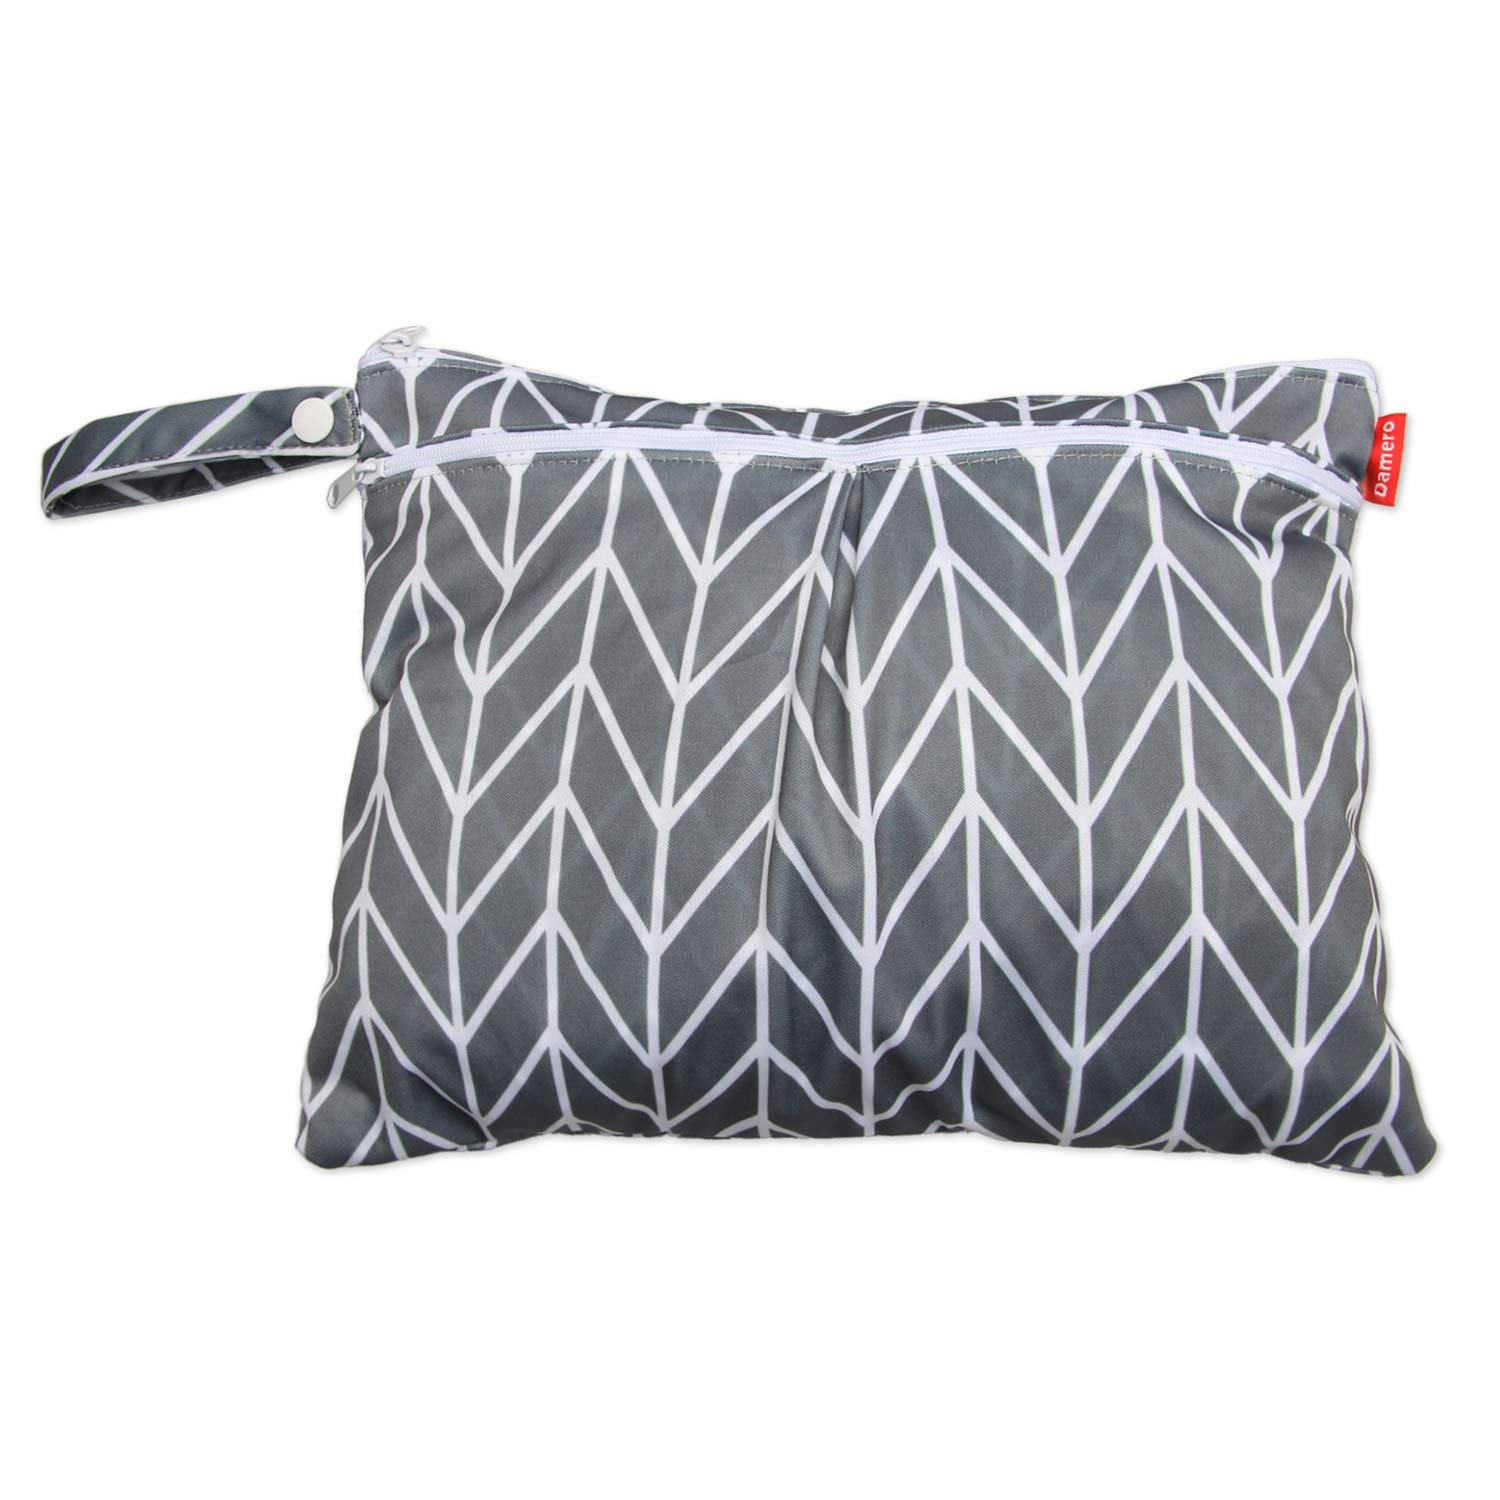 Damero Travel Wet and Dry Bag with Handle for Cloth Diaper, Pumping Parts, Clothes, Swimsuit and More, Easy to Grab and Go (Small, Gray Arrows)